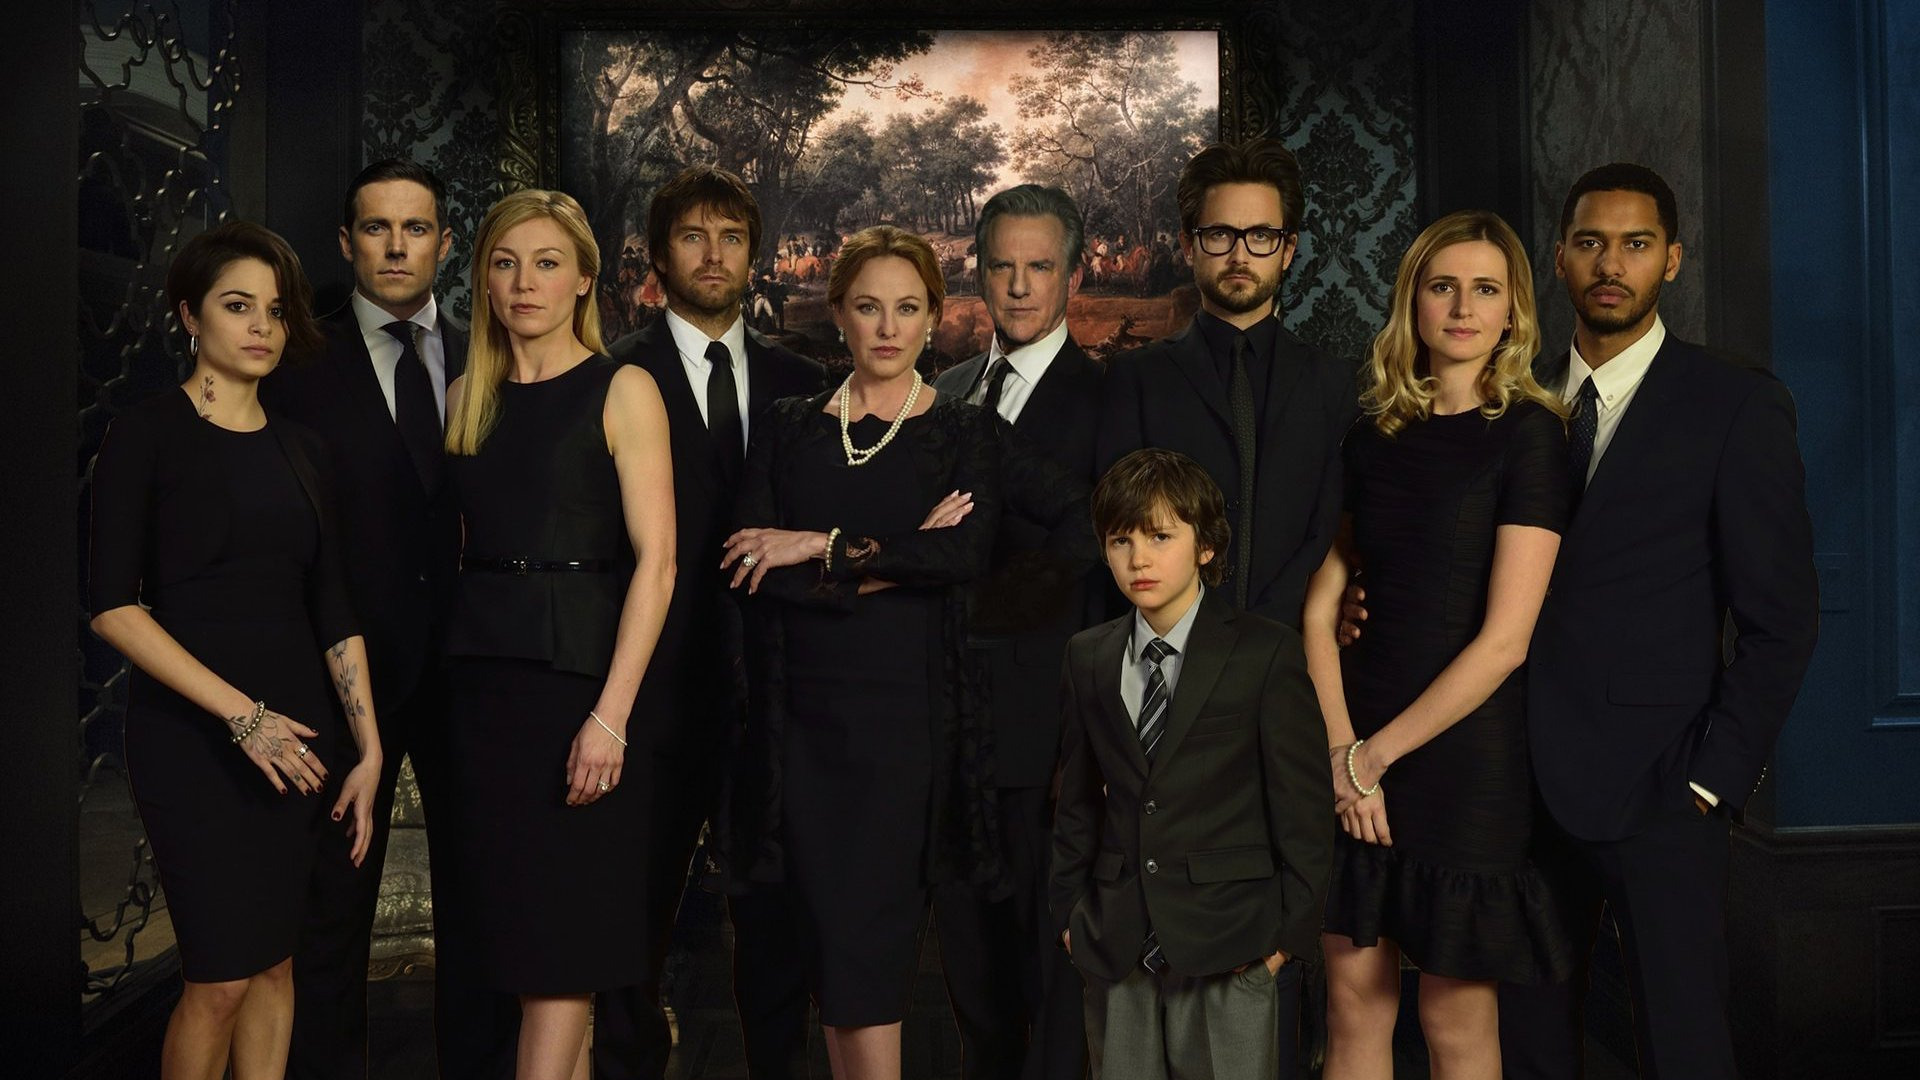 Show American Gothic